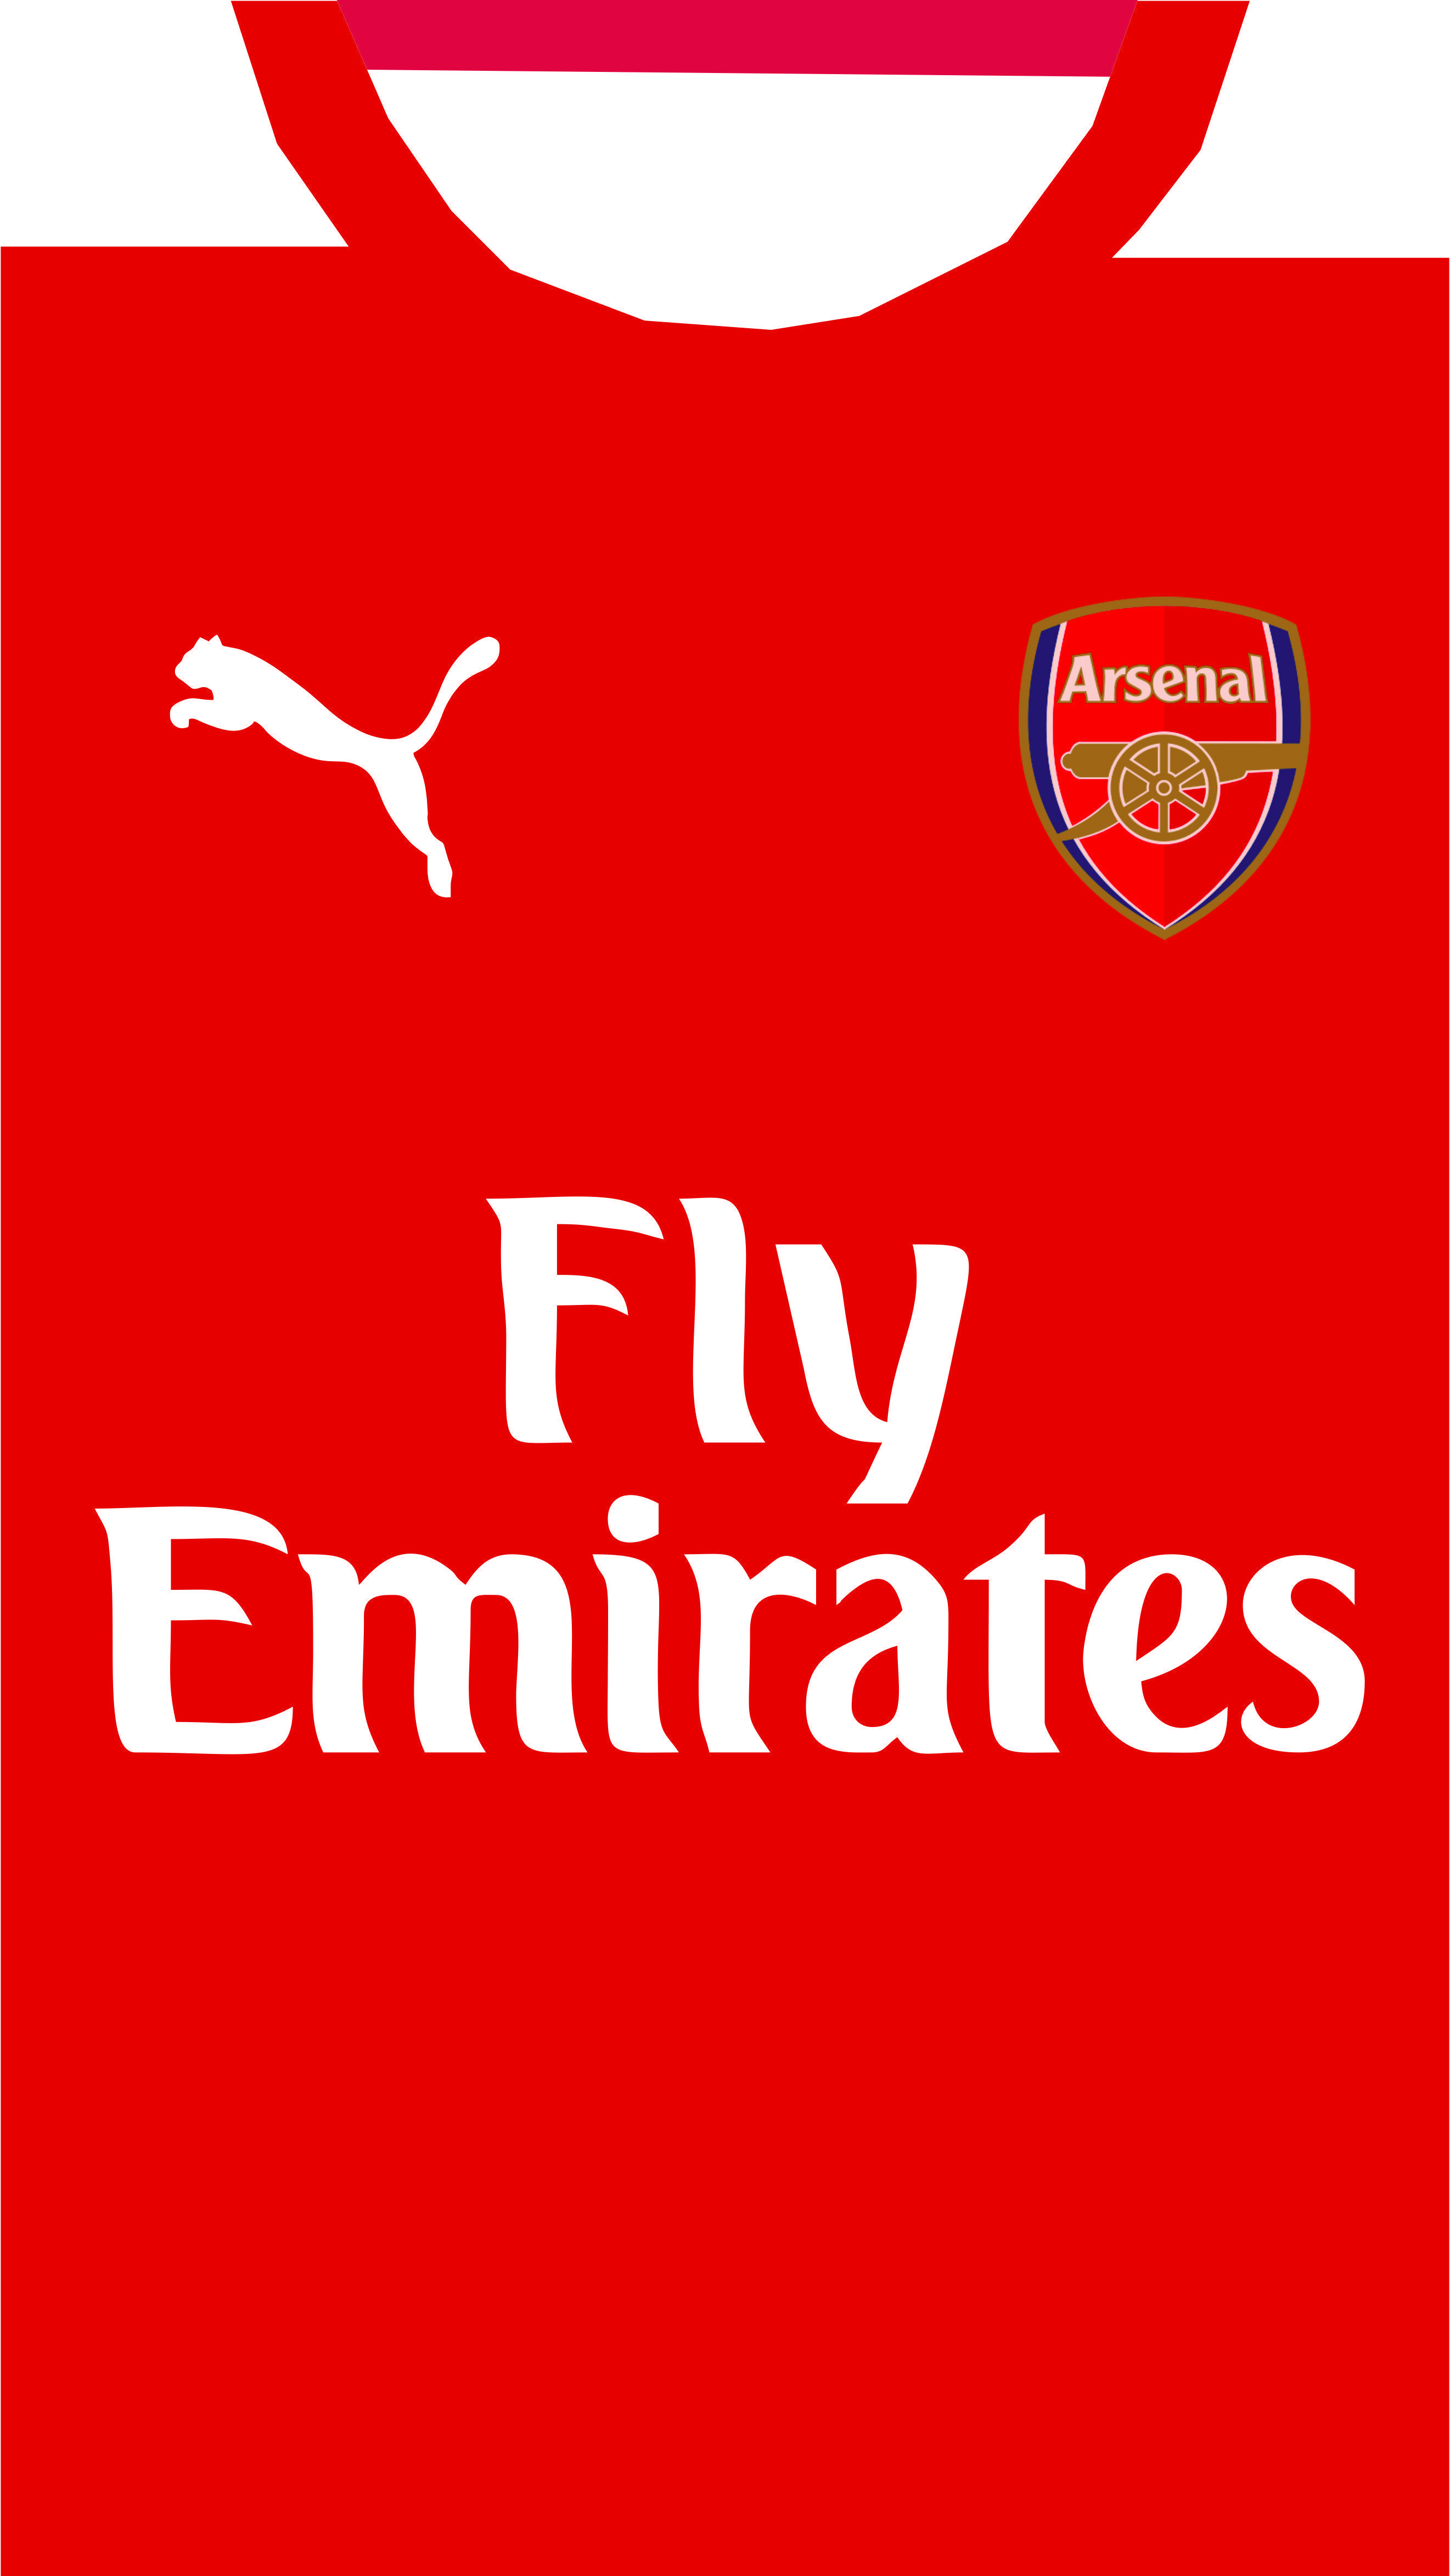 Arsenal Kit Wallpaper for iPhone | Places to Visit | Pinterest ...